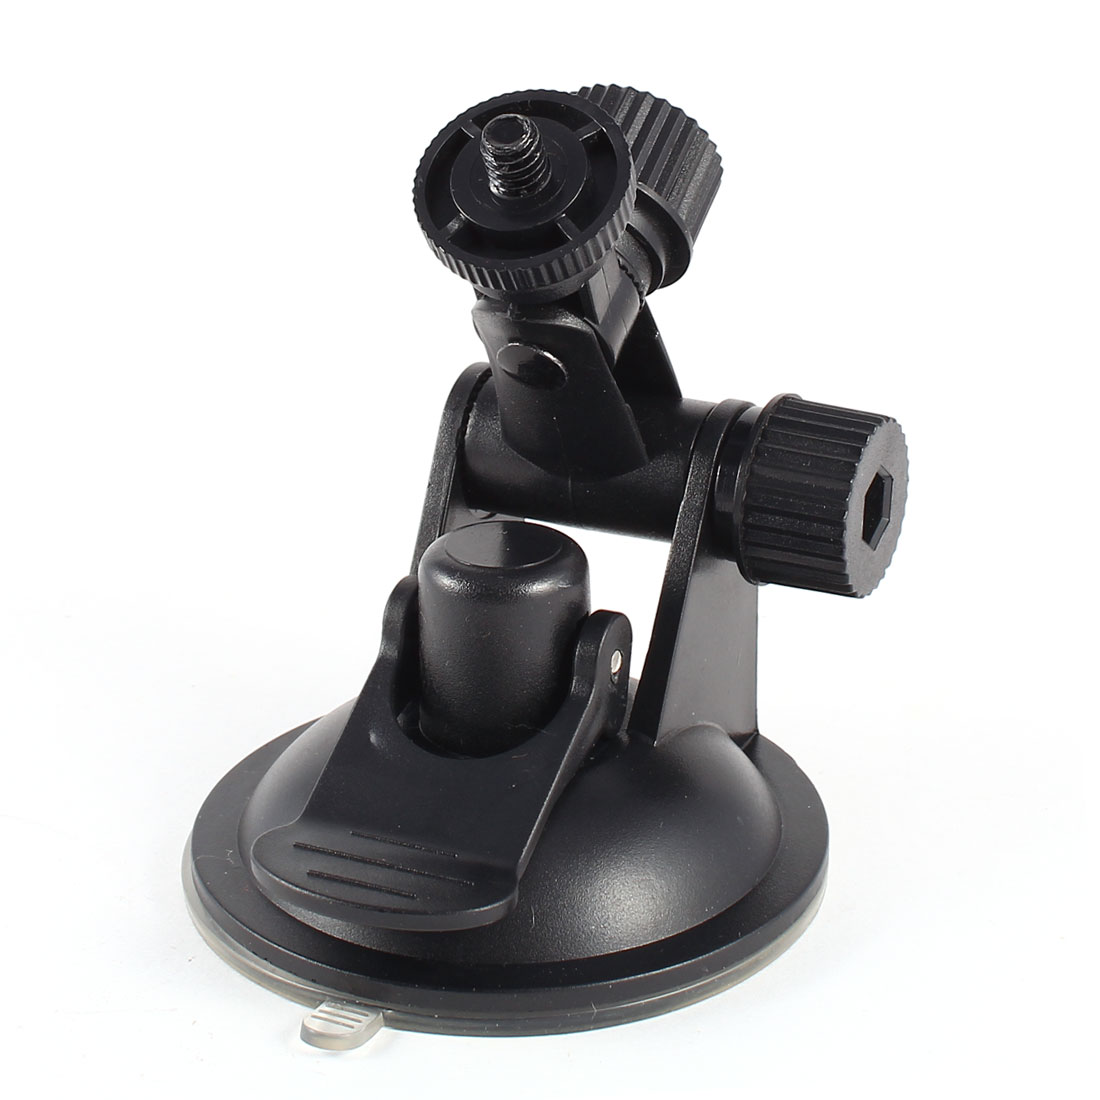 Adjustable Angle Suction Cup Car Windshield Camera Mount Bracket 8cm High